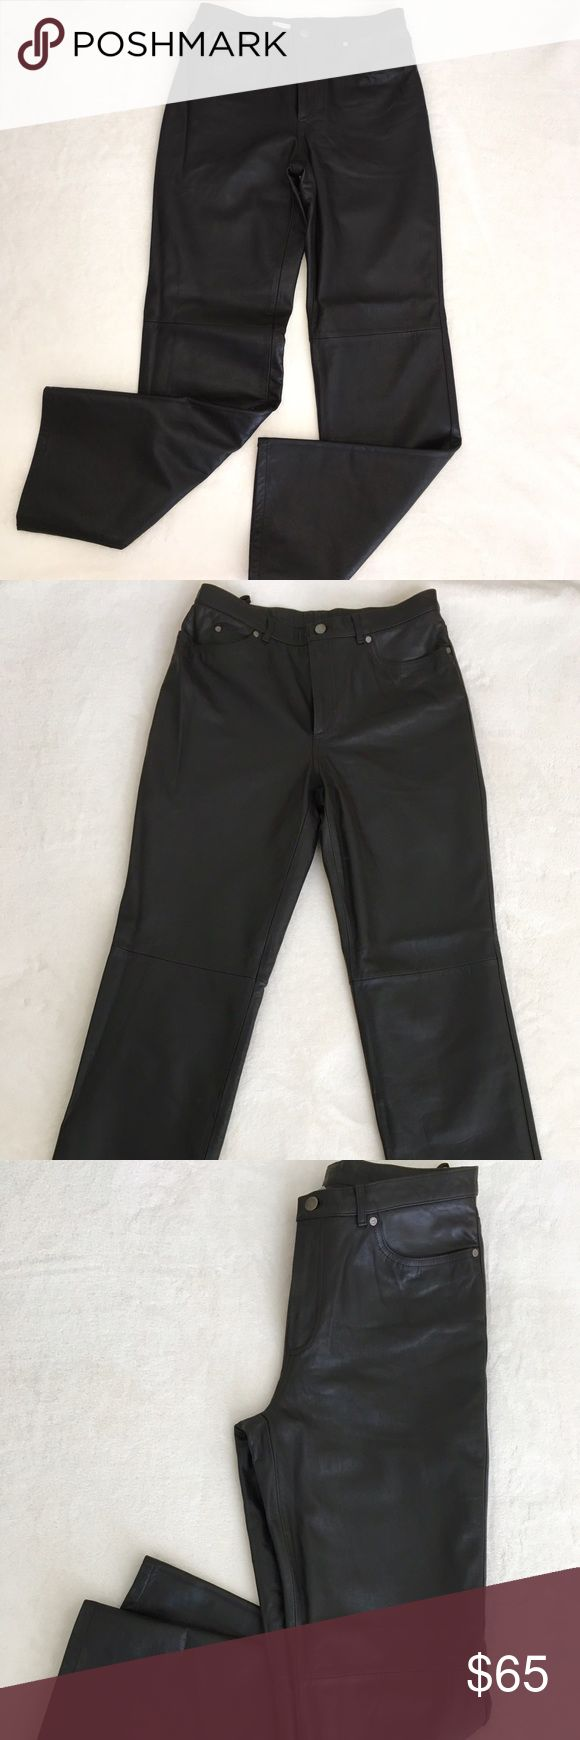 100% Real Leather Pants by Nine West 100% genuine leather pants by Nine West. Straight fit, lined. 32 inches inseam. Dark brown. Nice soft leather. Worn once. Matching jacket also for sale. Excellent quality and condition. Looks brand new! Nine West Pants Straight Leg